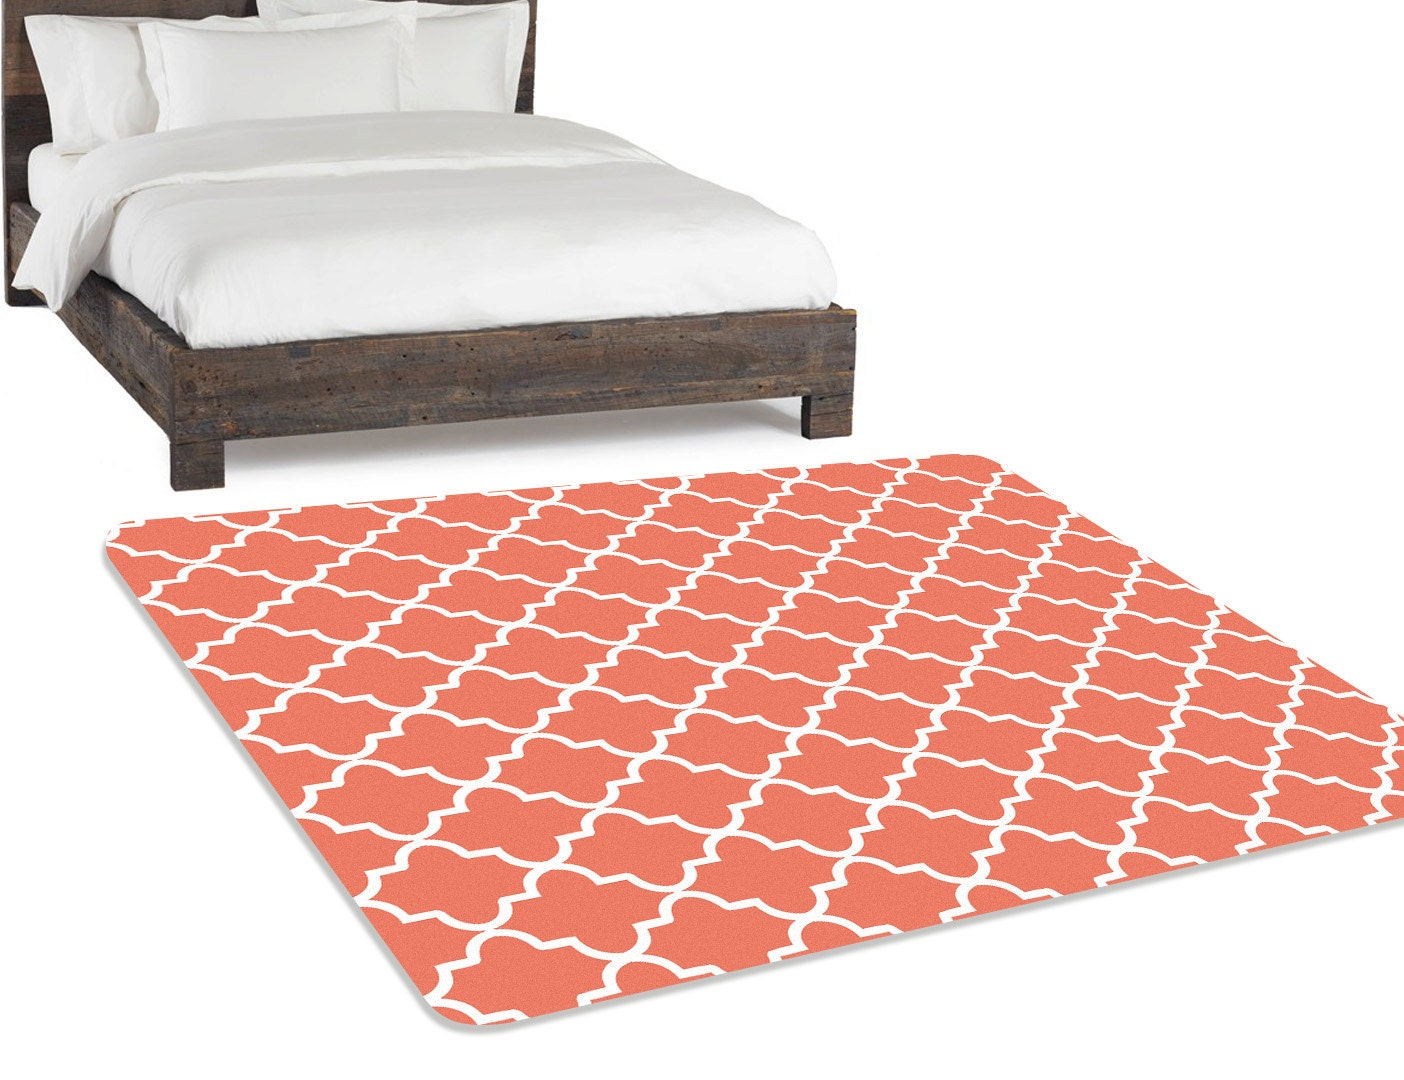 Coral Rug Living Room Rug Bedroom Rug Area Rug 5x8